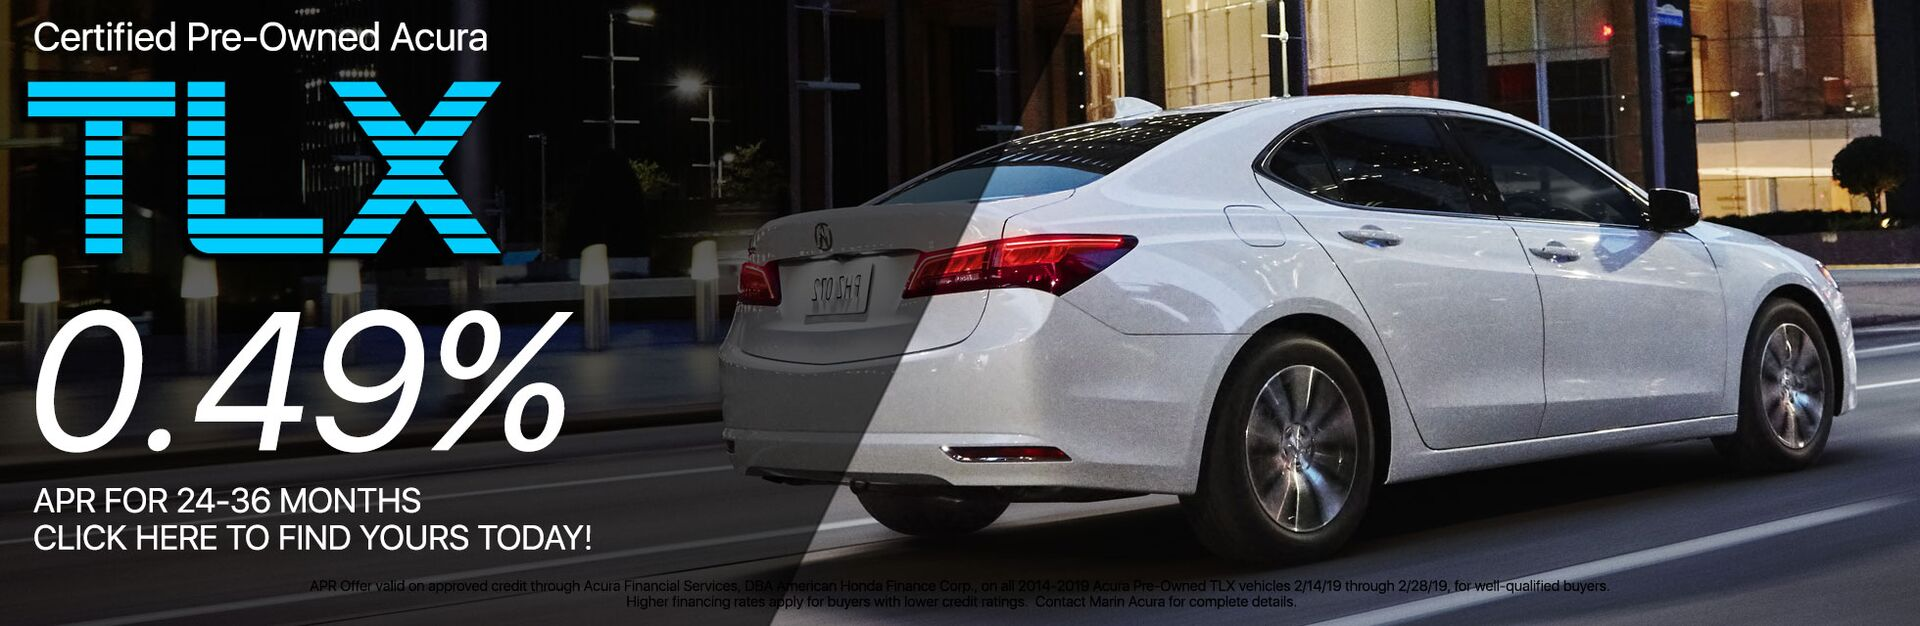 Acura Certified Pre-Owned TLX Special Offer